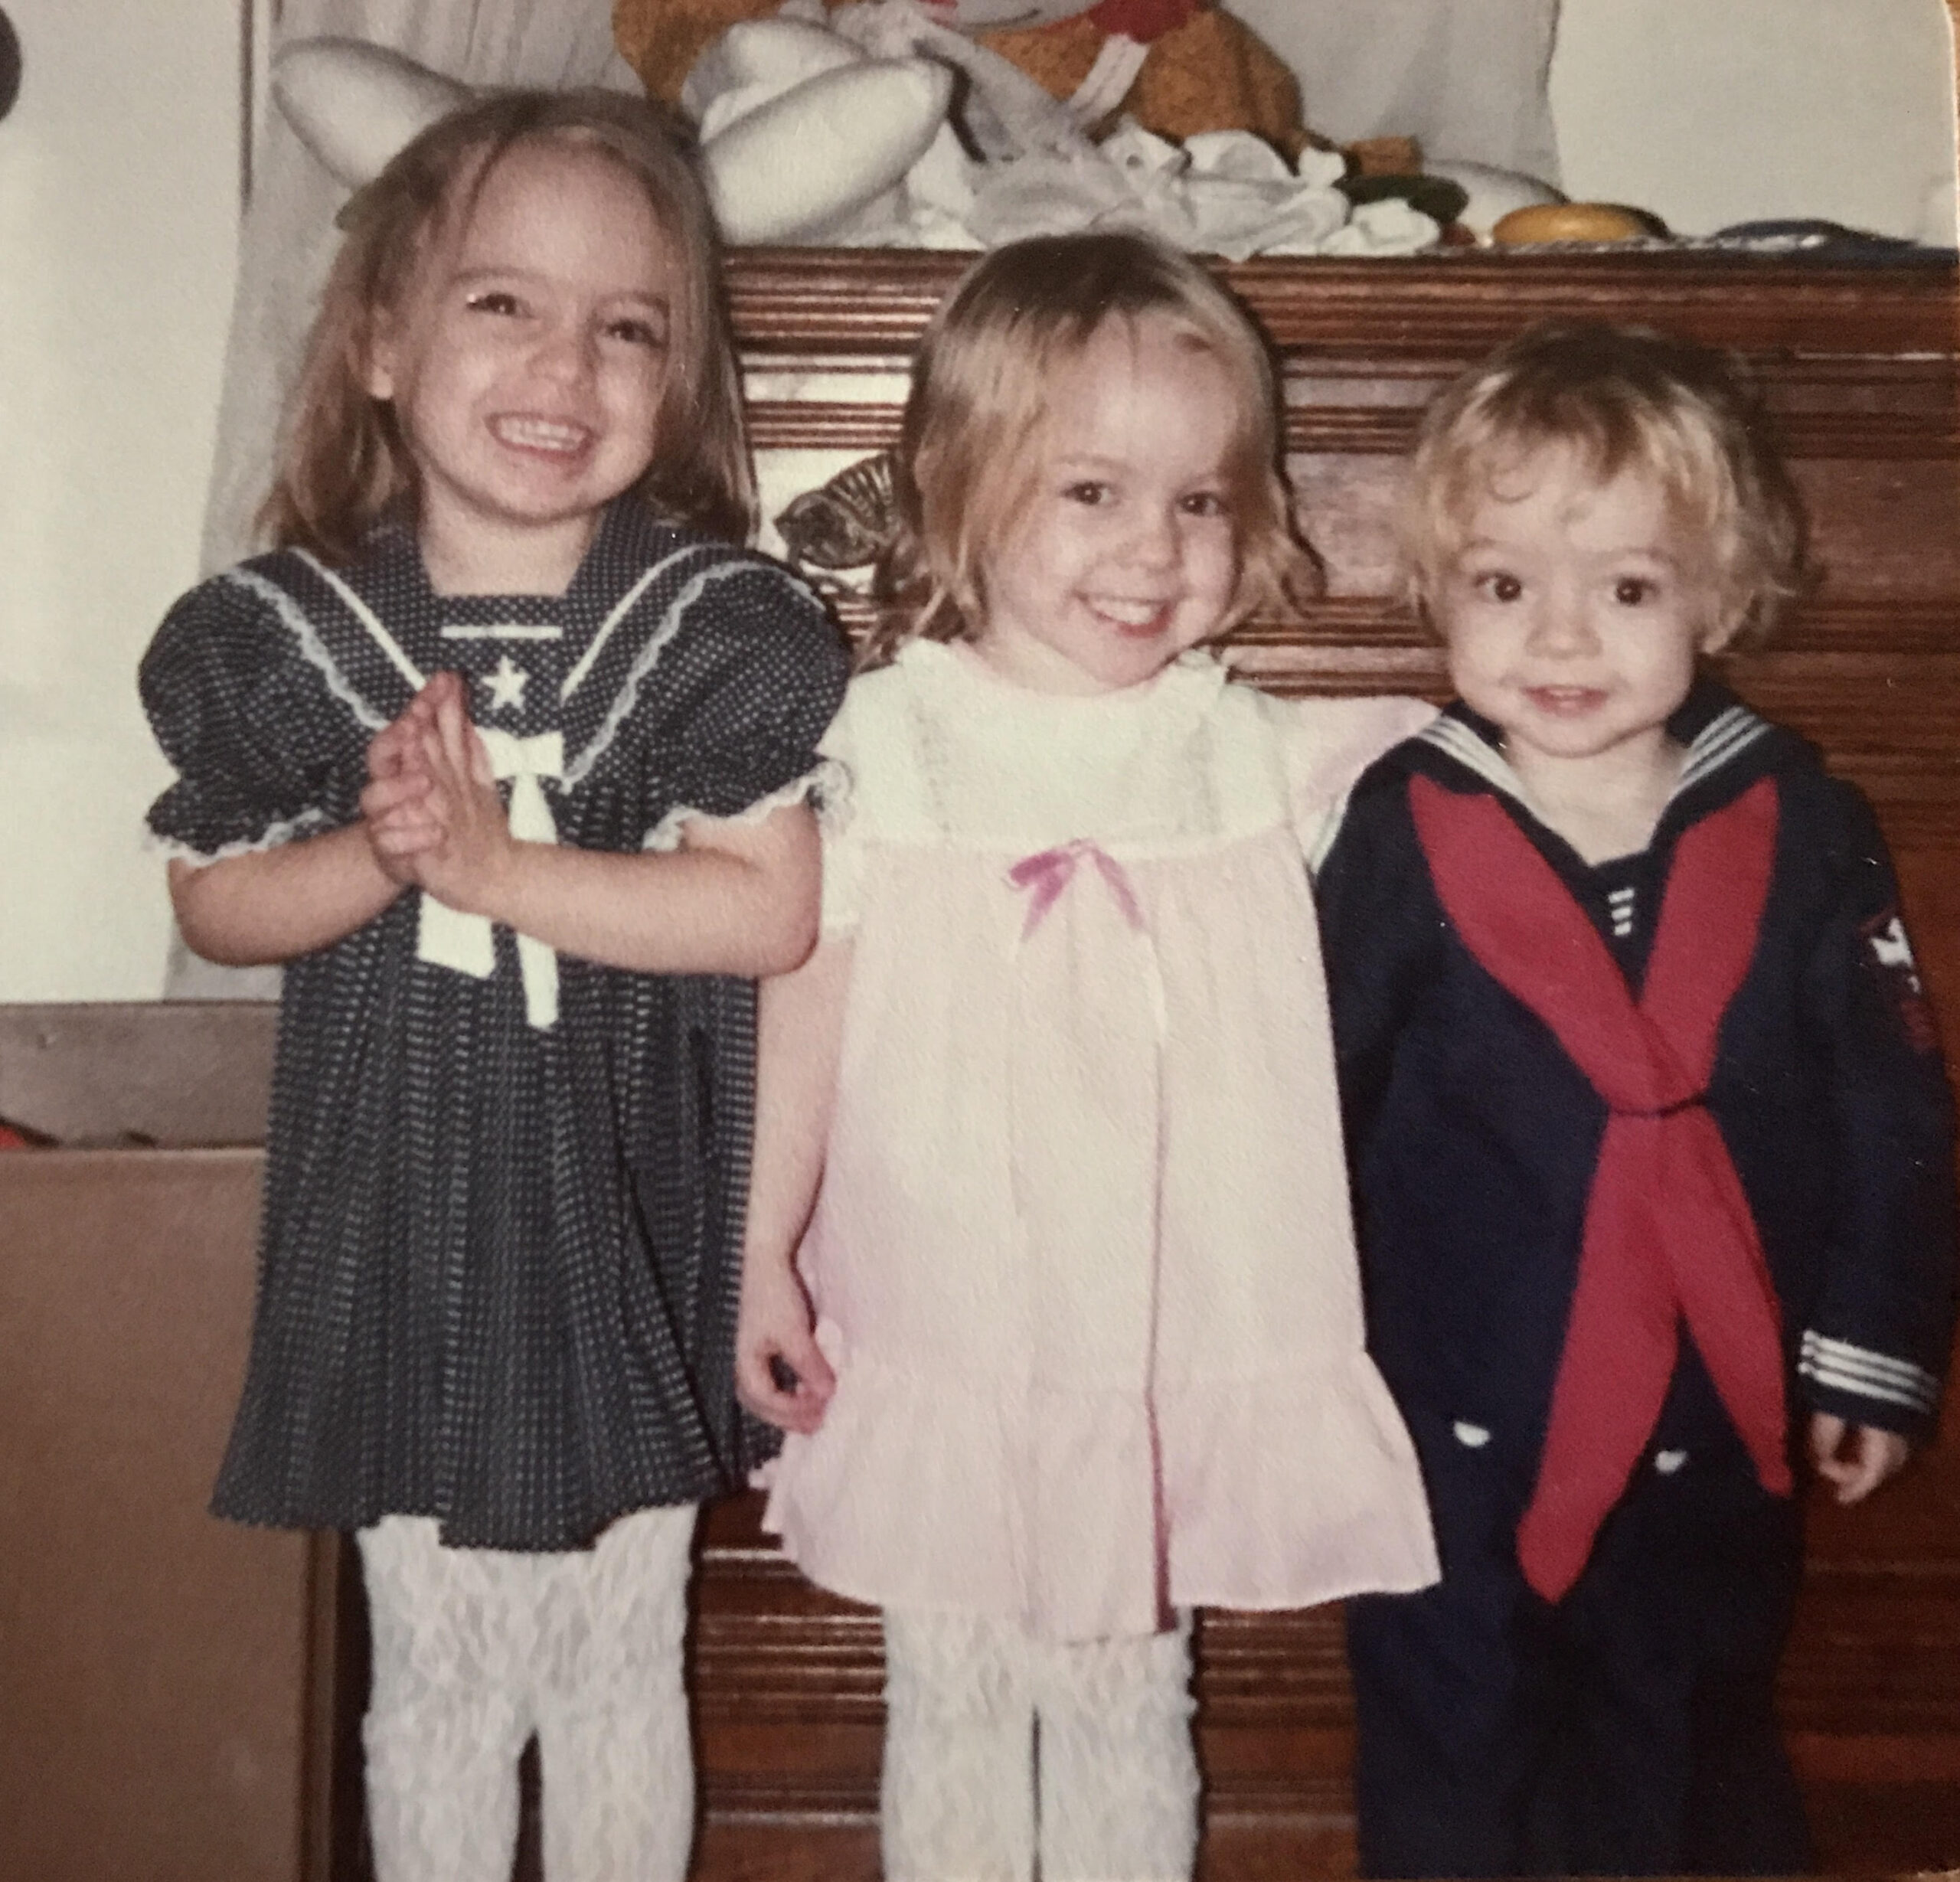 April Hann Lanford, center with her twin sister and little brother, grew up in a collecting family